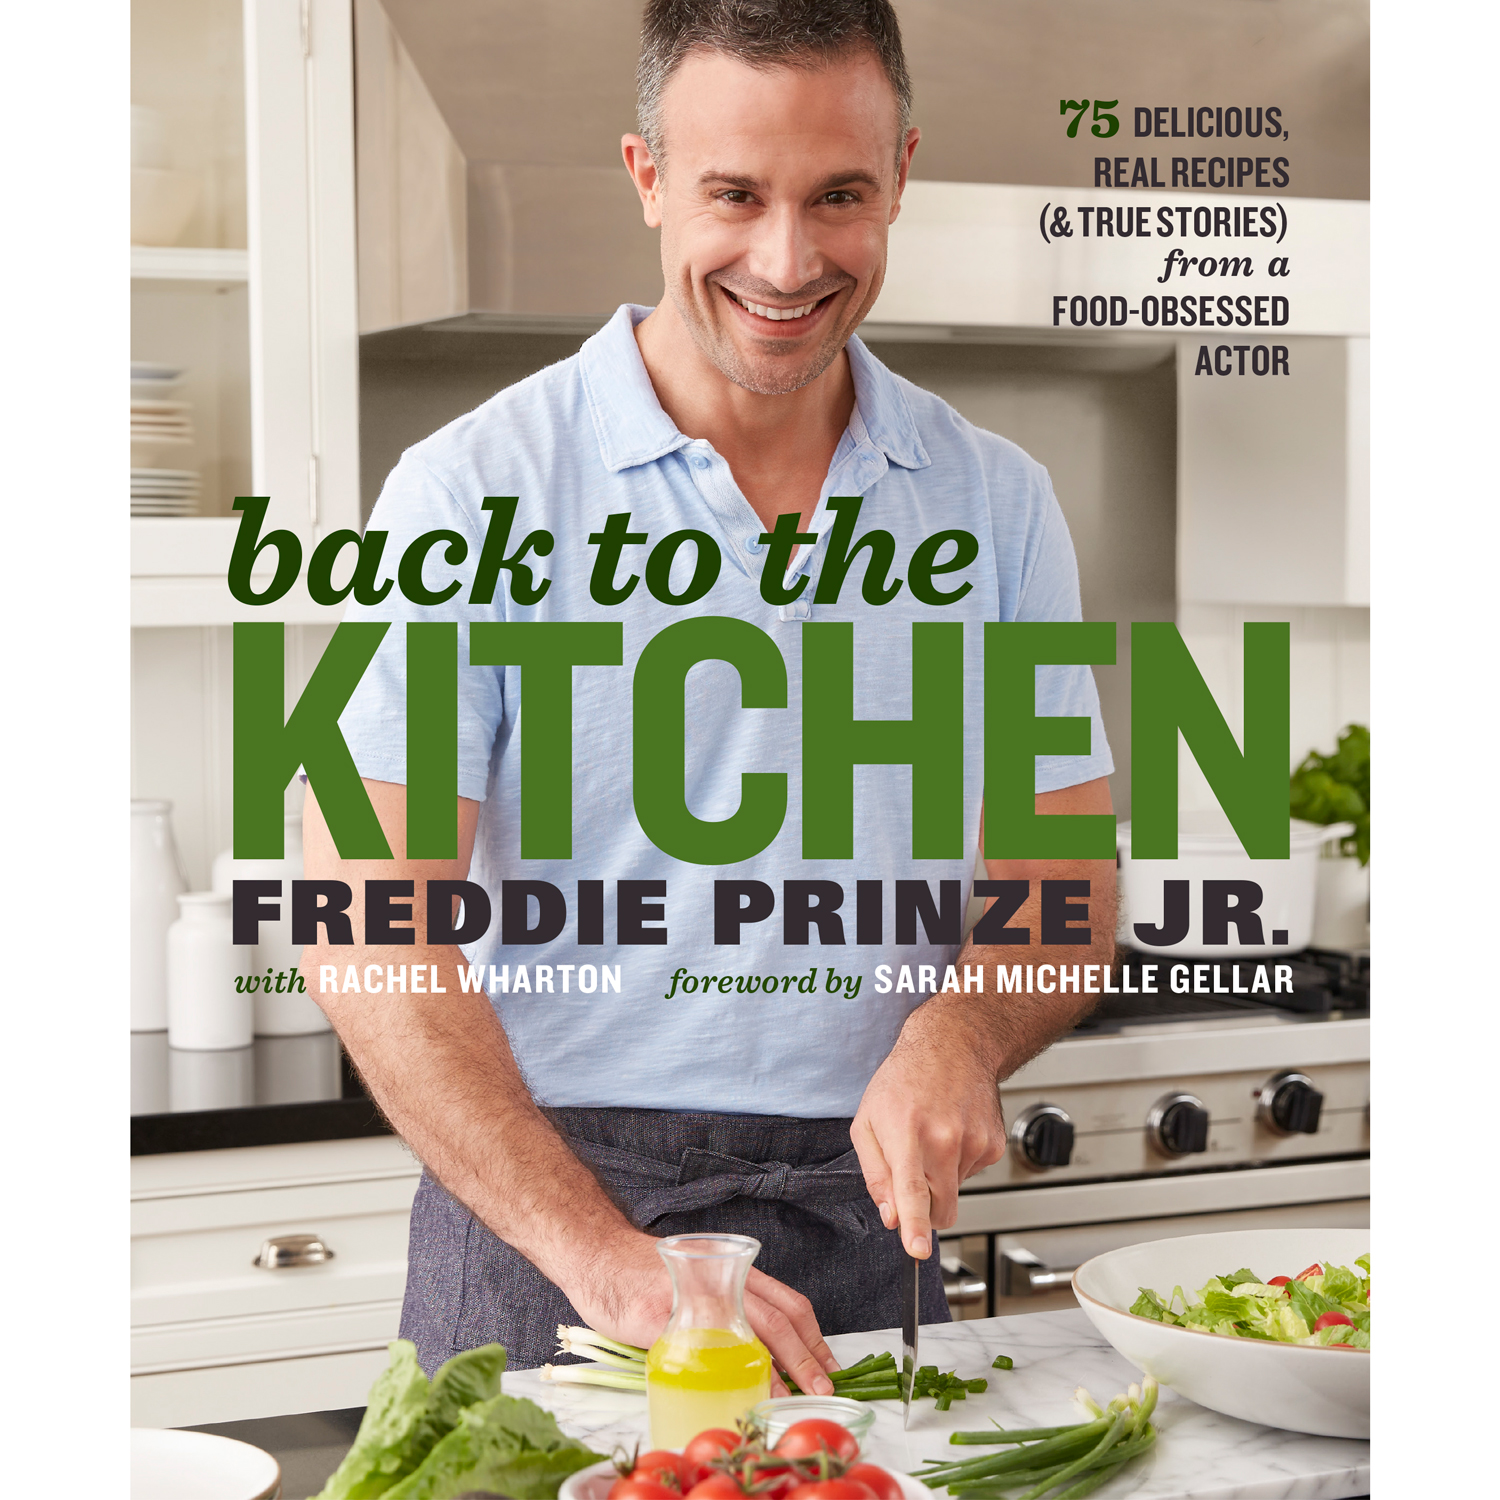 Freddie Prinze Jr.'s Cookbook